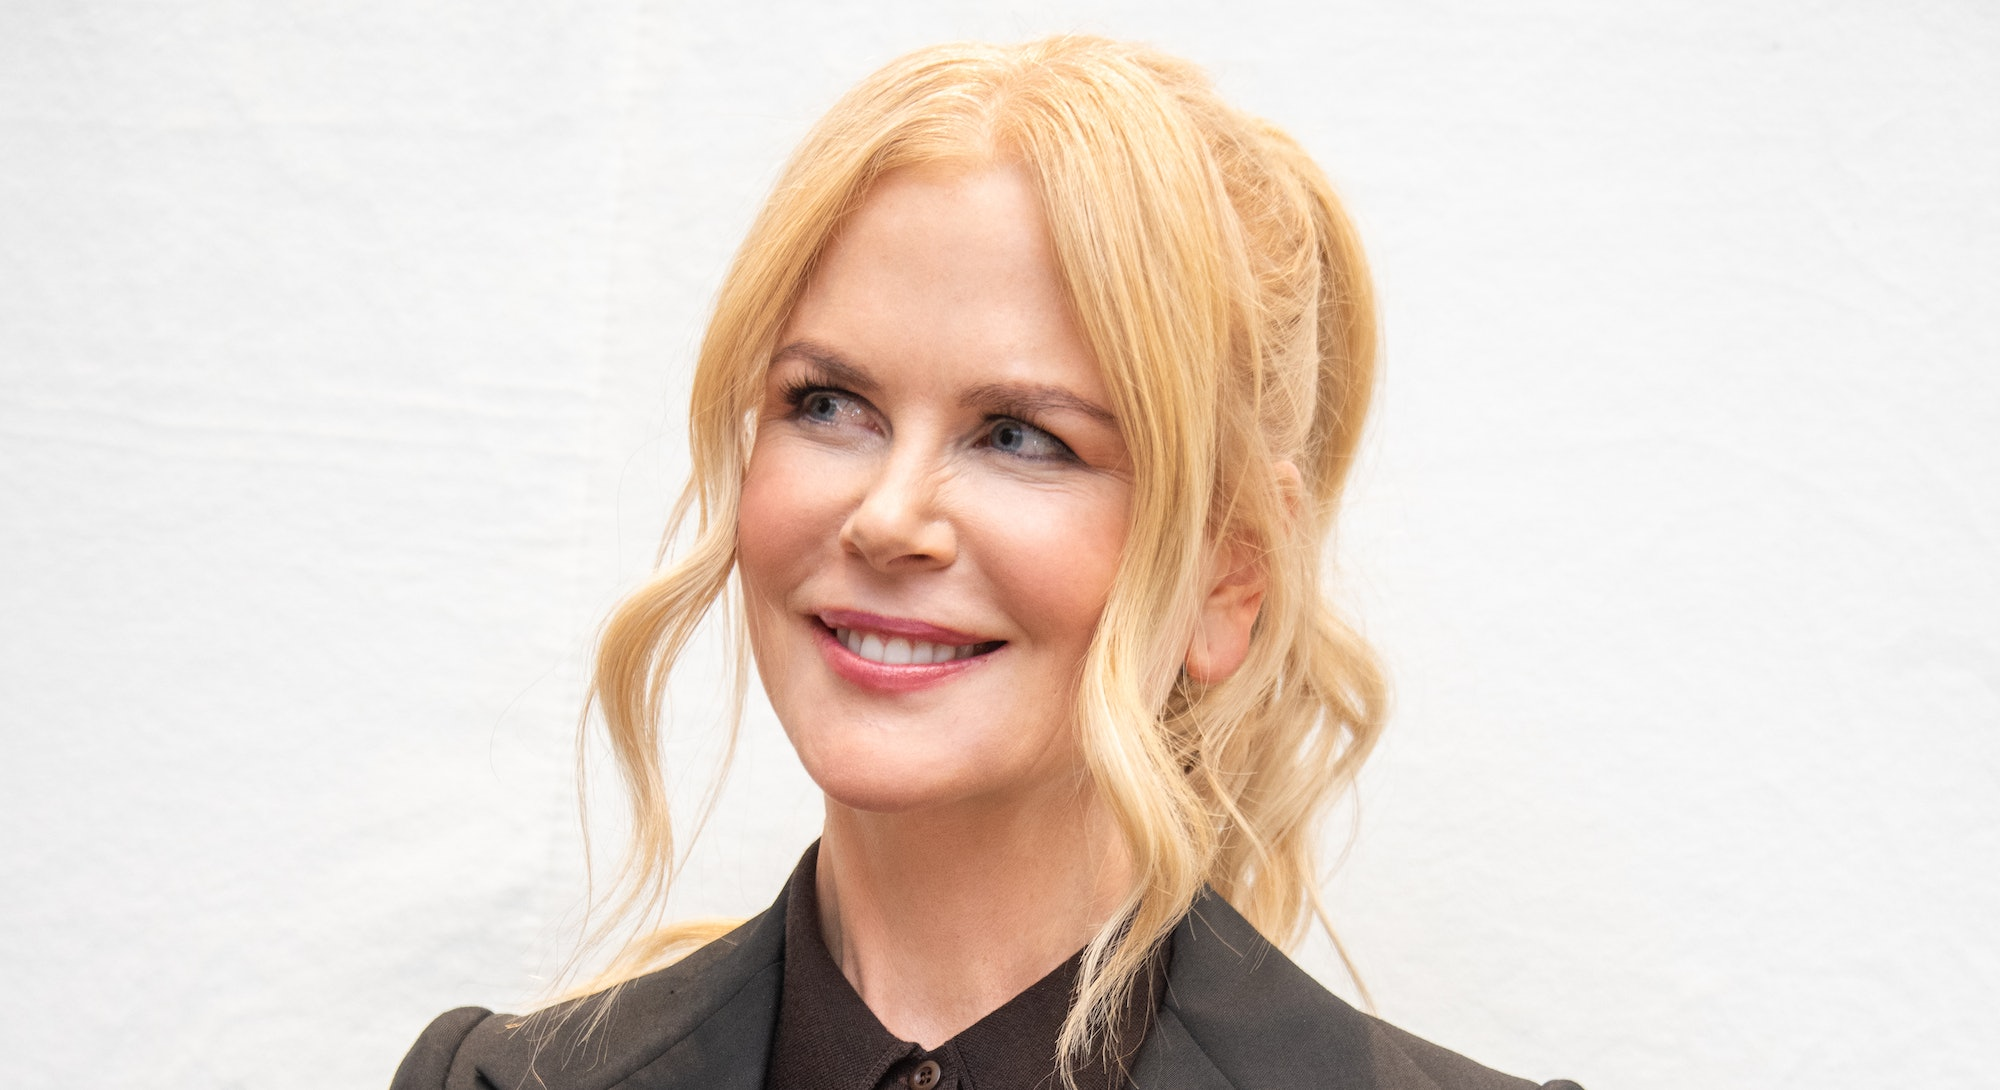 """BEVERLY HILLS, CALIFORNIA - NOVEMBER 02: Nicole Kidman at the """"Bombshell"""" Press Conference at the Fo..."""